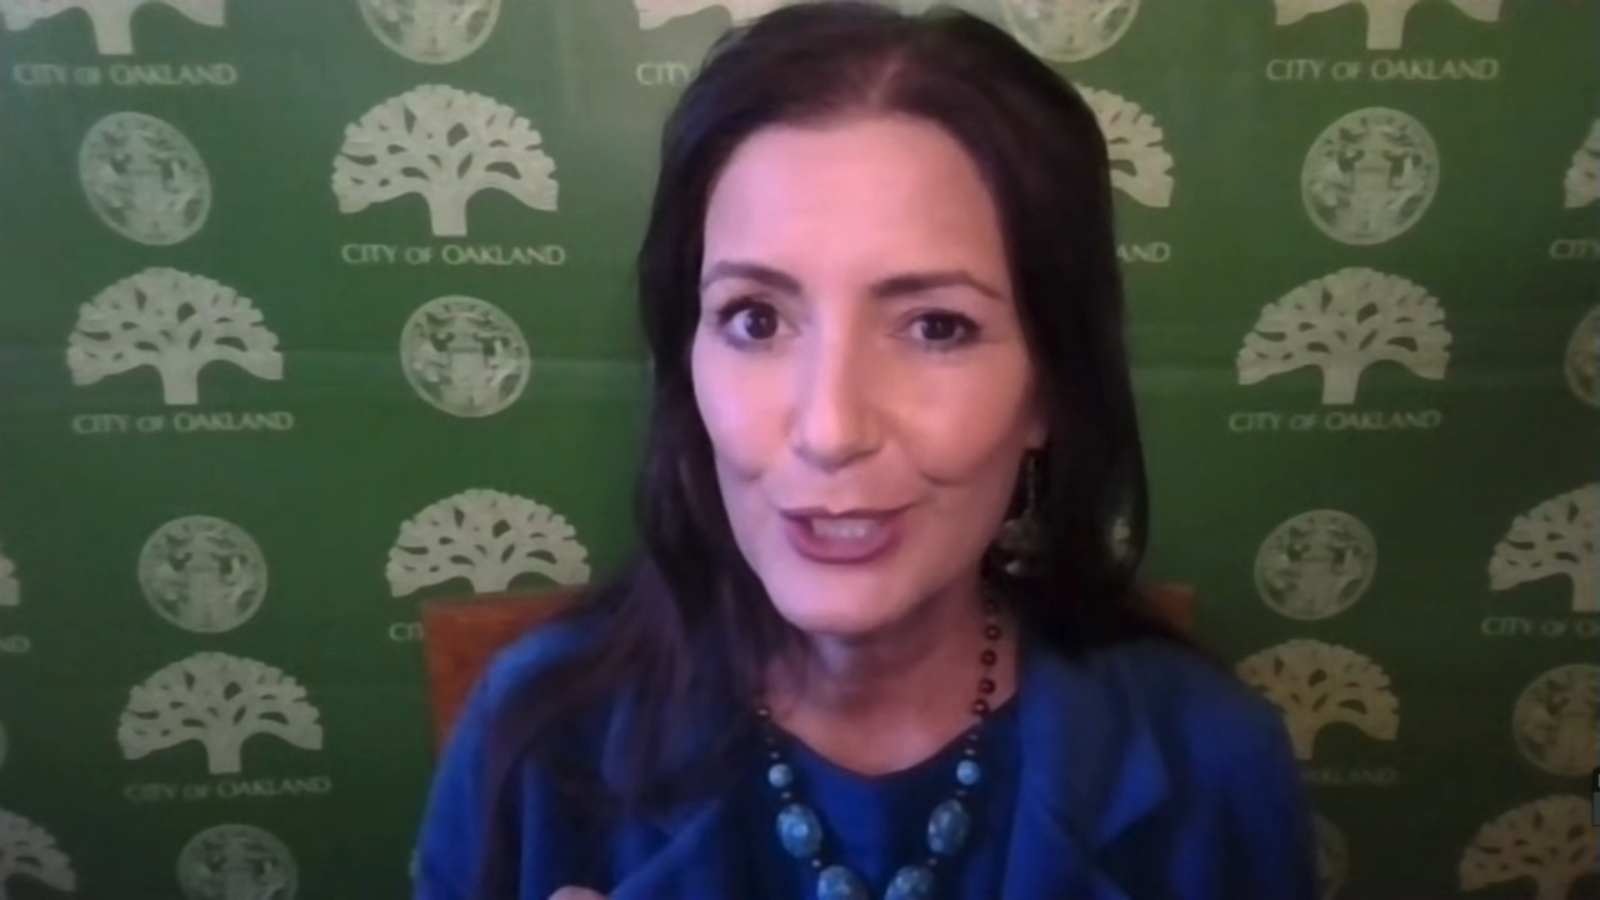 Oakland mayor reacts to A's threats to relocate as delays with new stadium continue